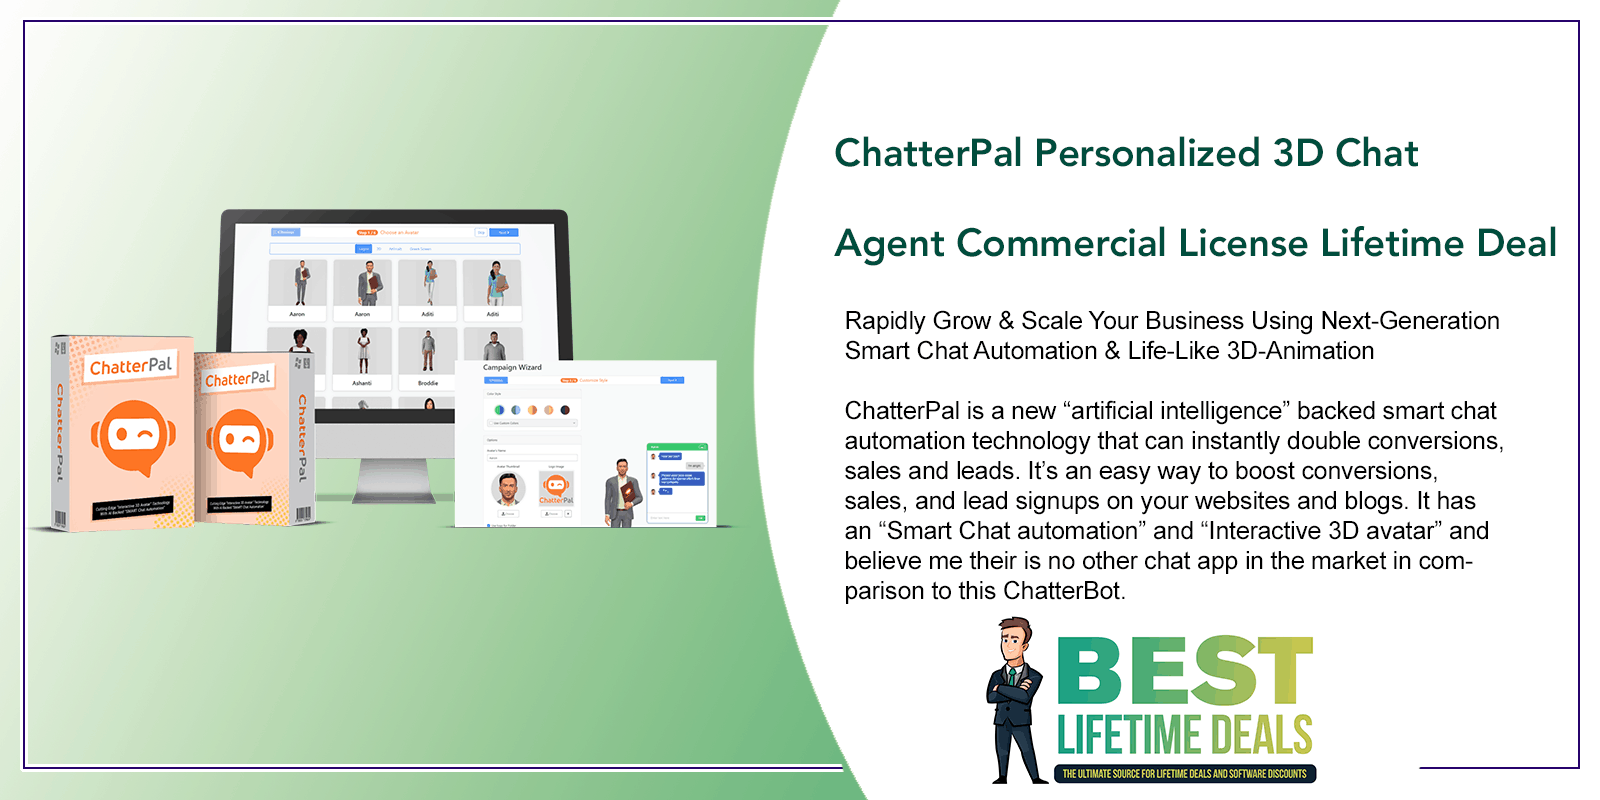 ChatterPal Personalized 3D Chat Agent Featured Image